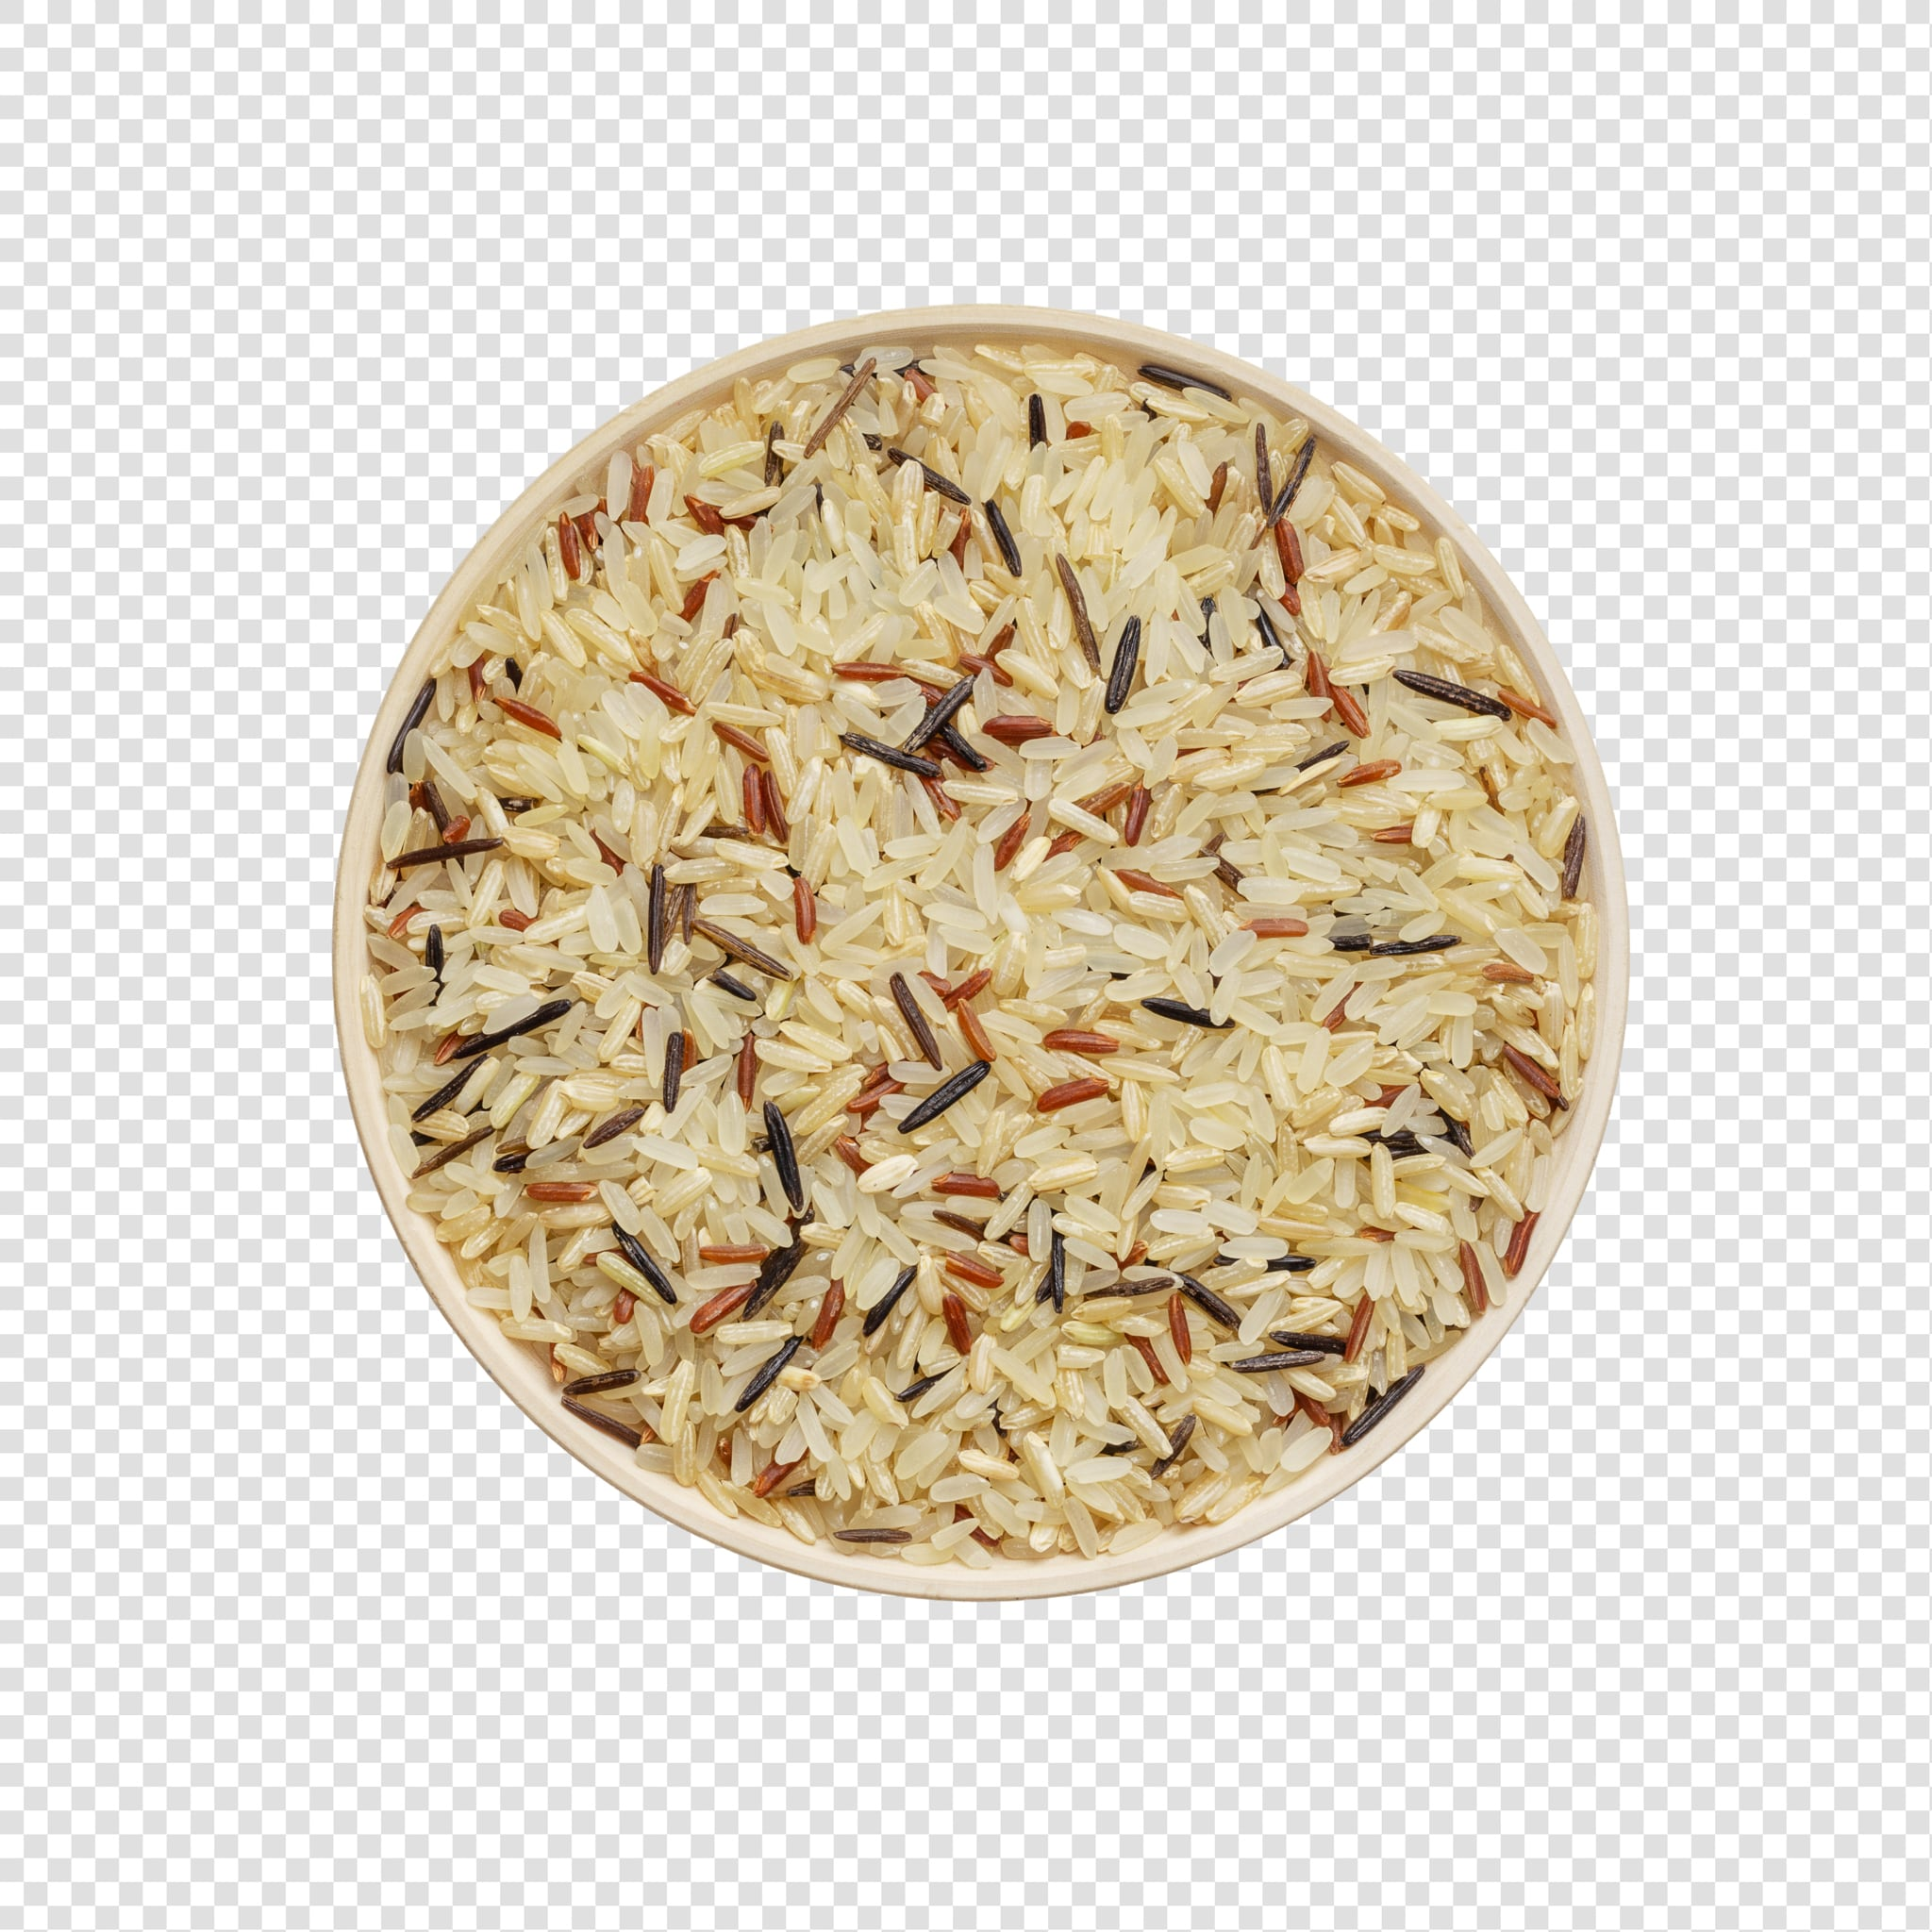 Isolated Rice psd image